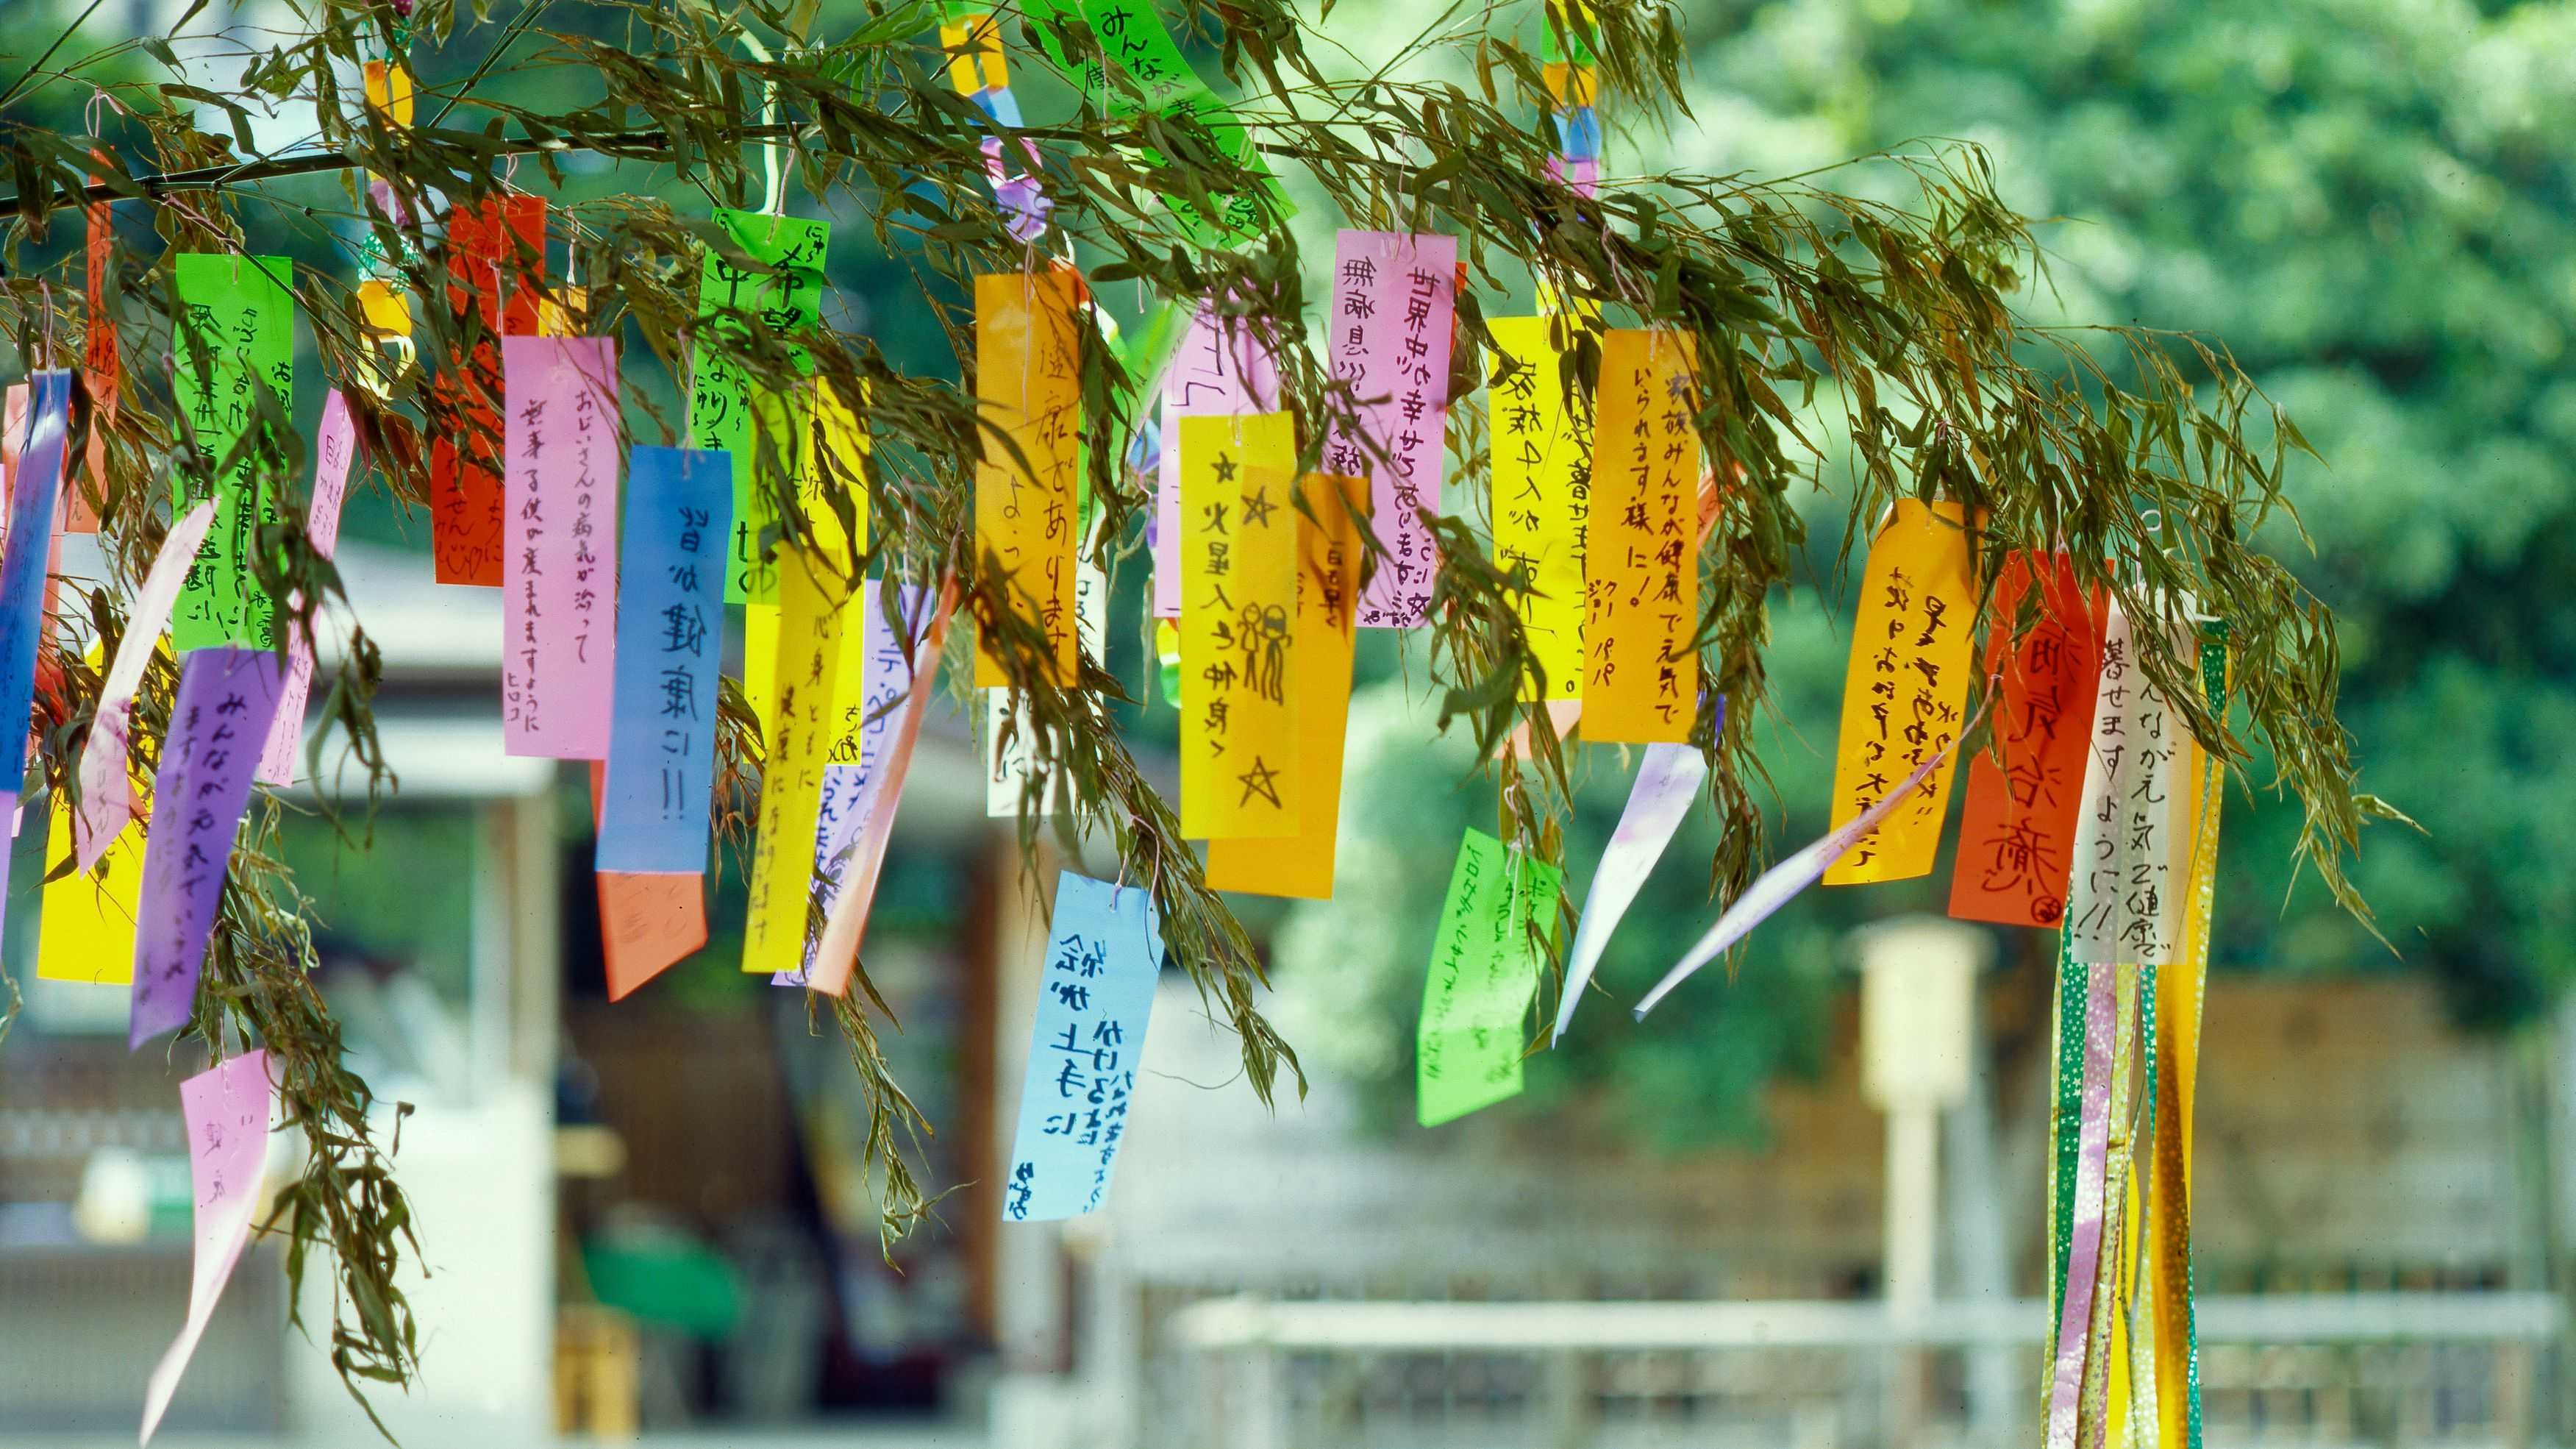 The Tanabata Festival in Japan and the Tanabata Story